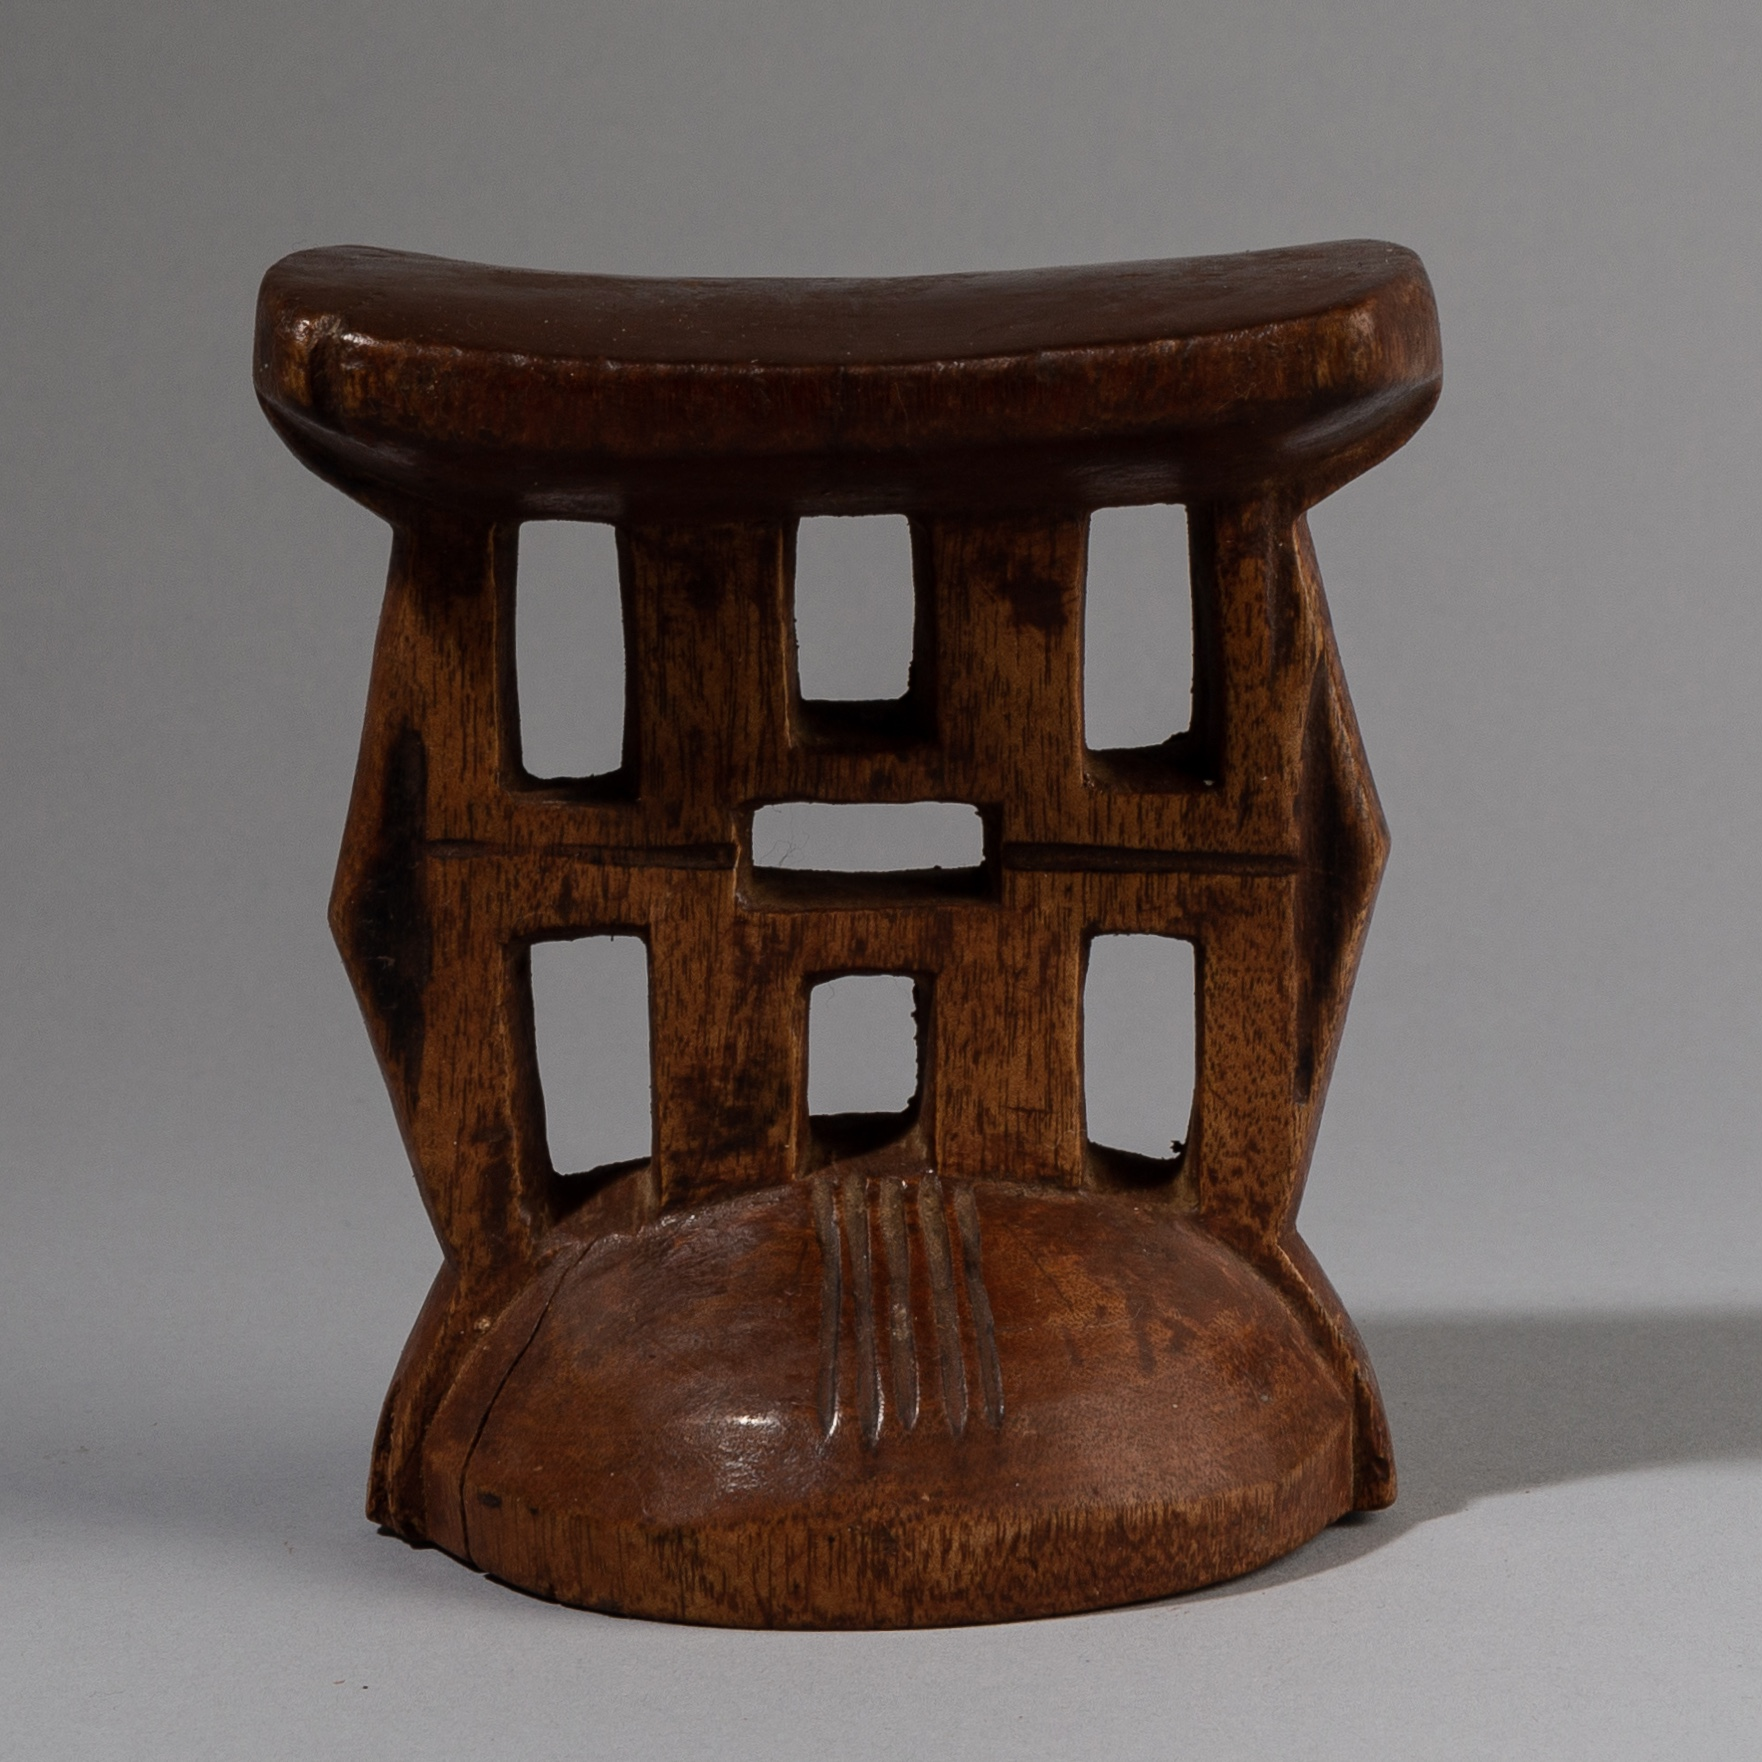 Sold HZ -A LOVELY HIMBA HEADREST FROM NAMIBIA, S AFRICA ( No 3783 )